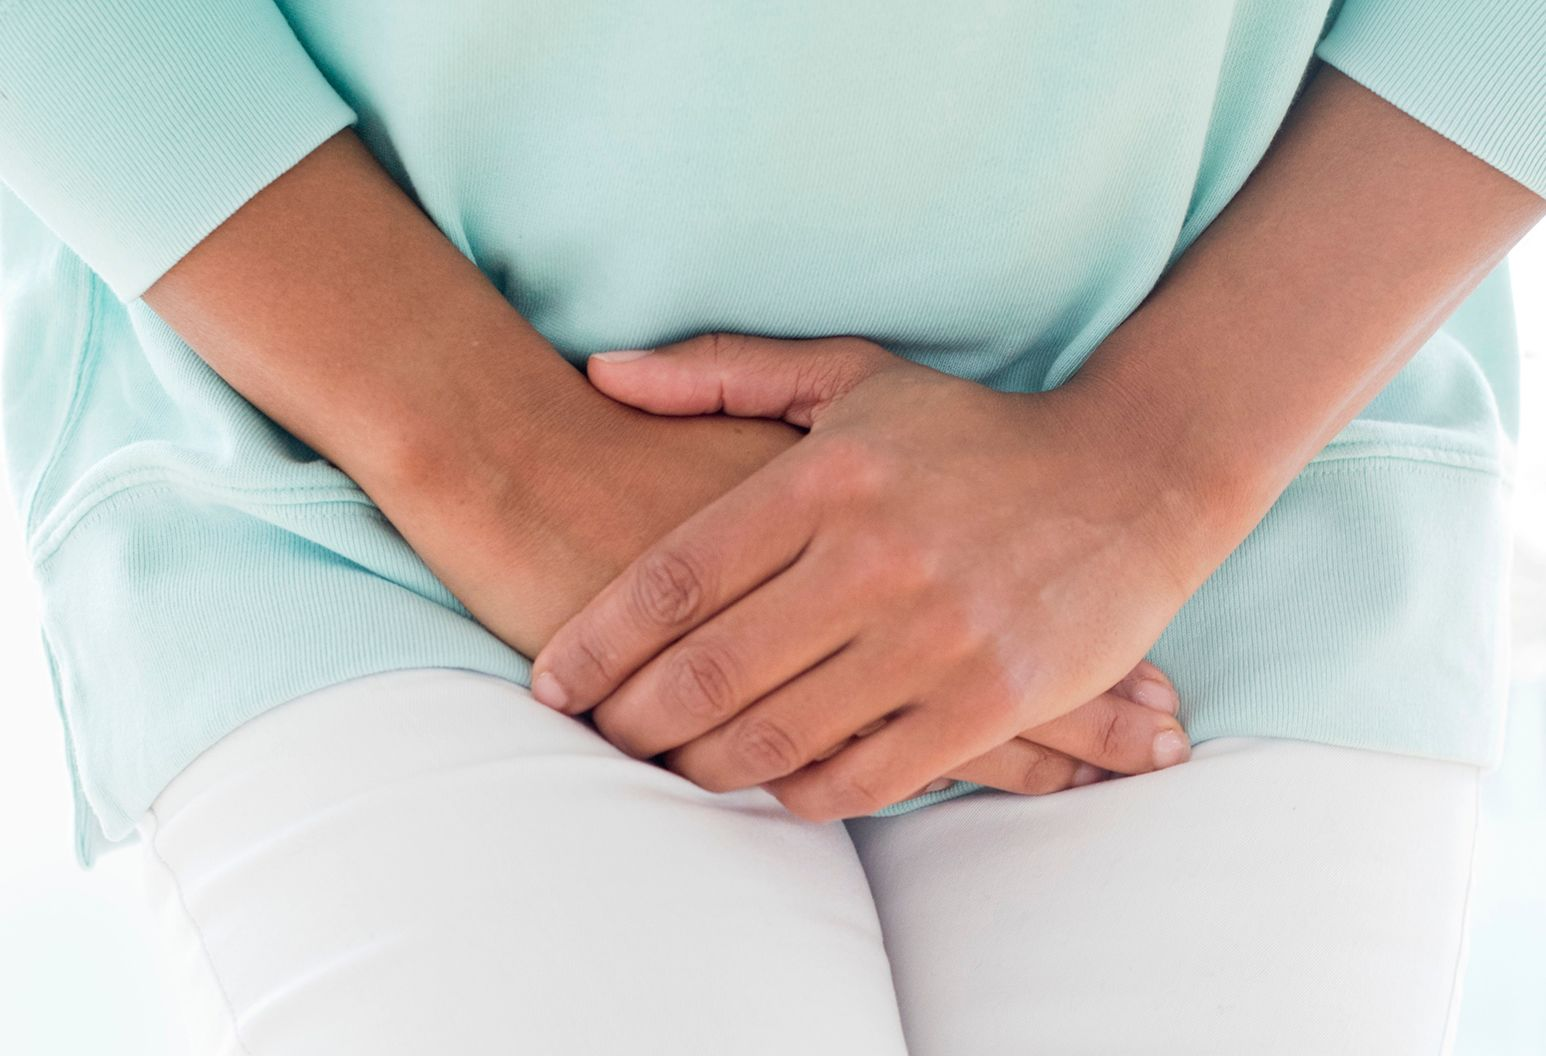 Woman in a blue shirt and white pants clutches her stomach in pain.